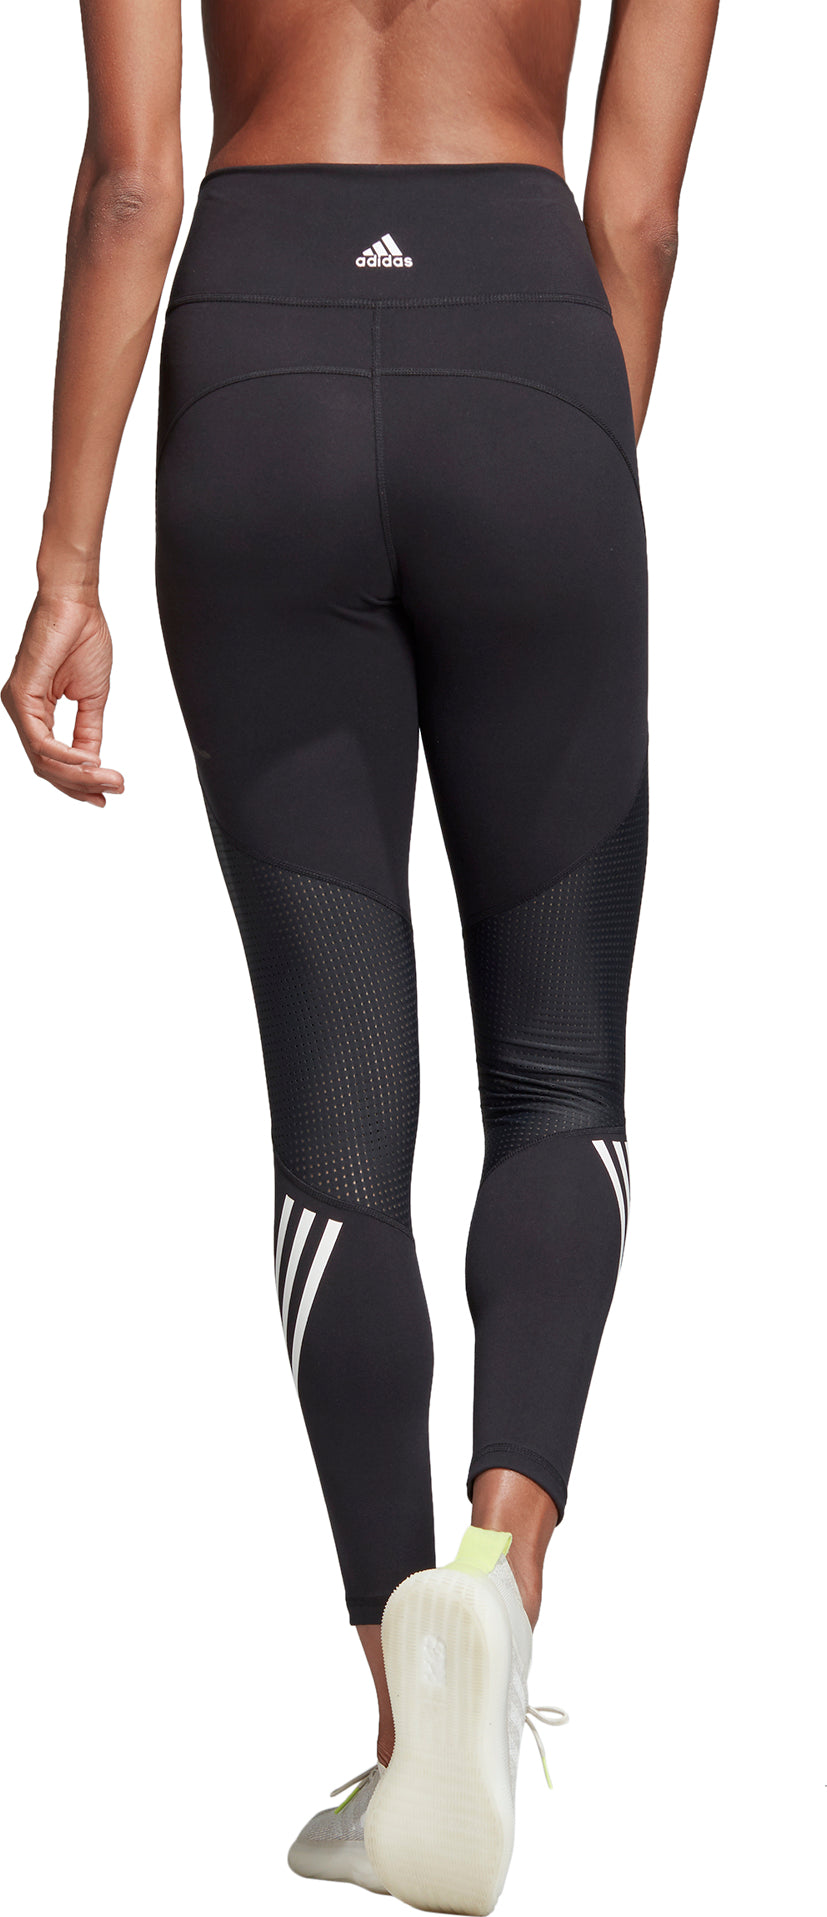 Adidas Believe This High Rise 78 Tights Women's